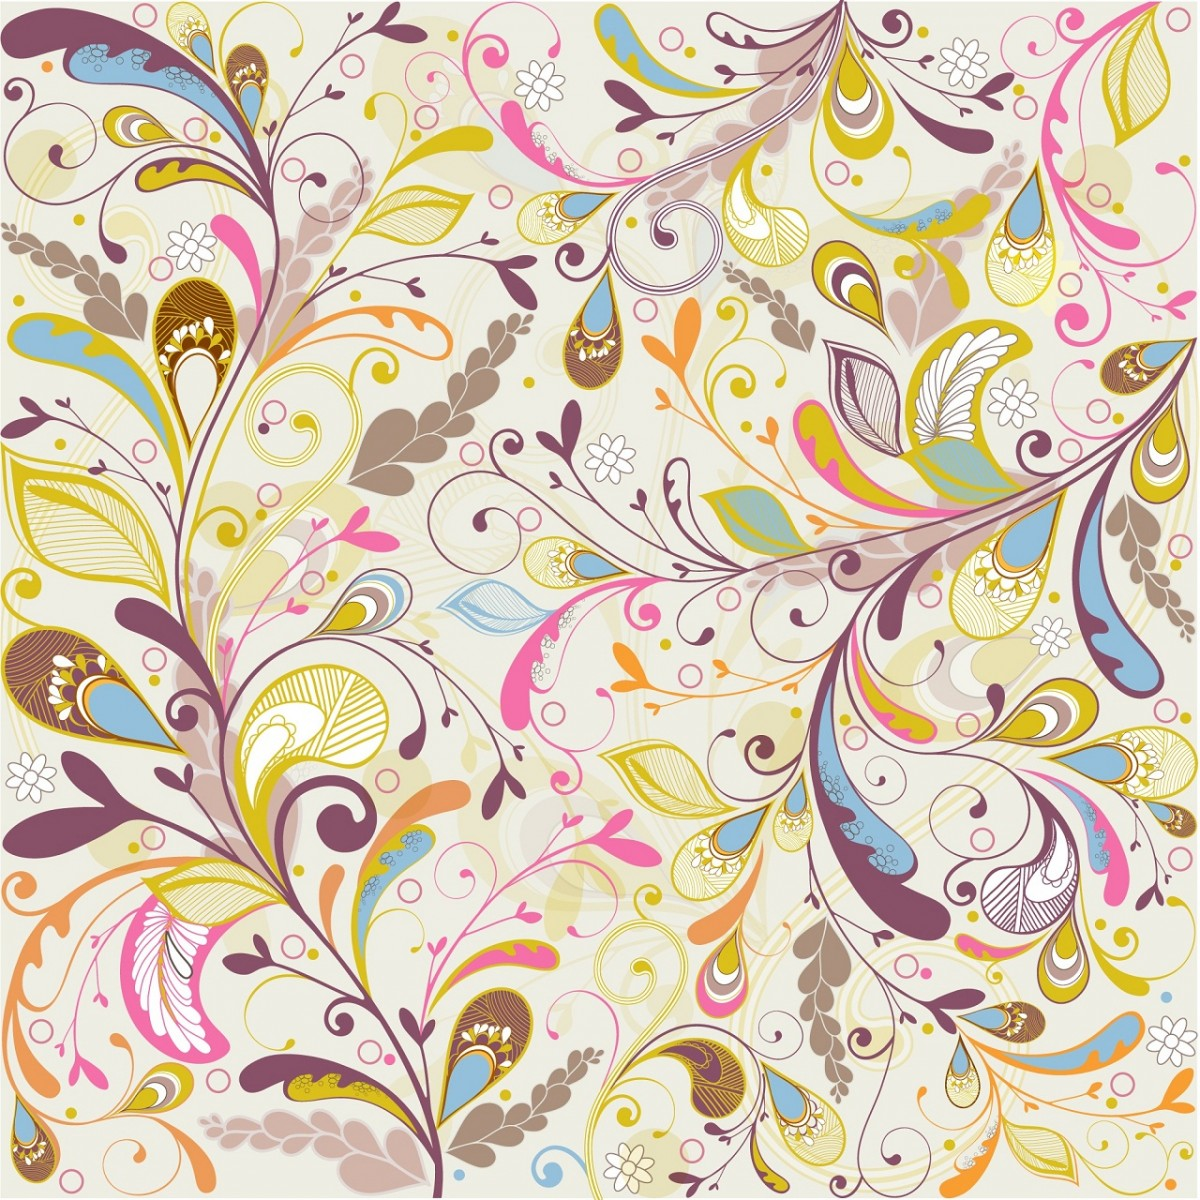 Jigsaw Puzzle Solve jigsaw puzzles online - Bright pattern